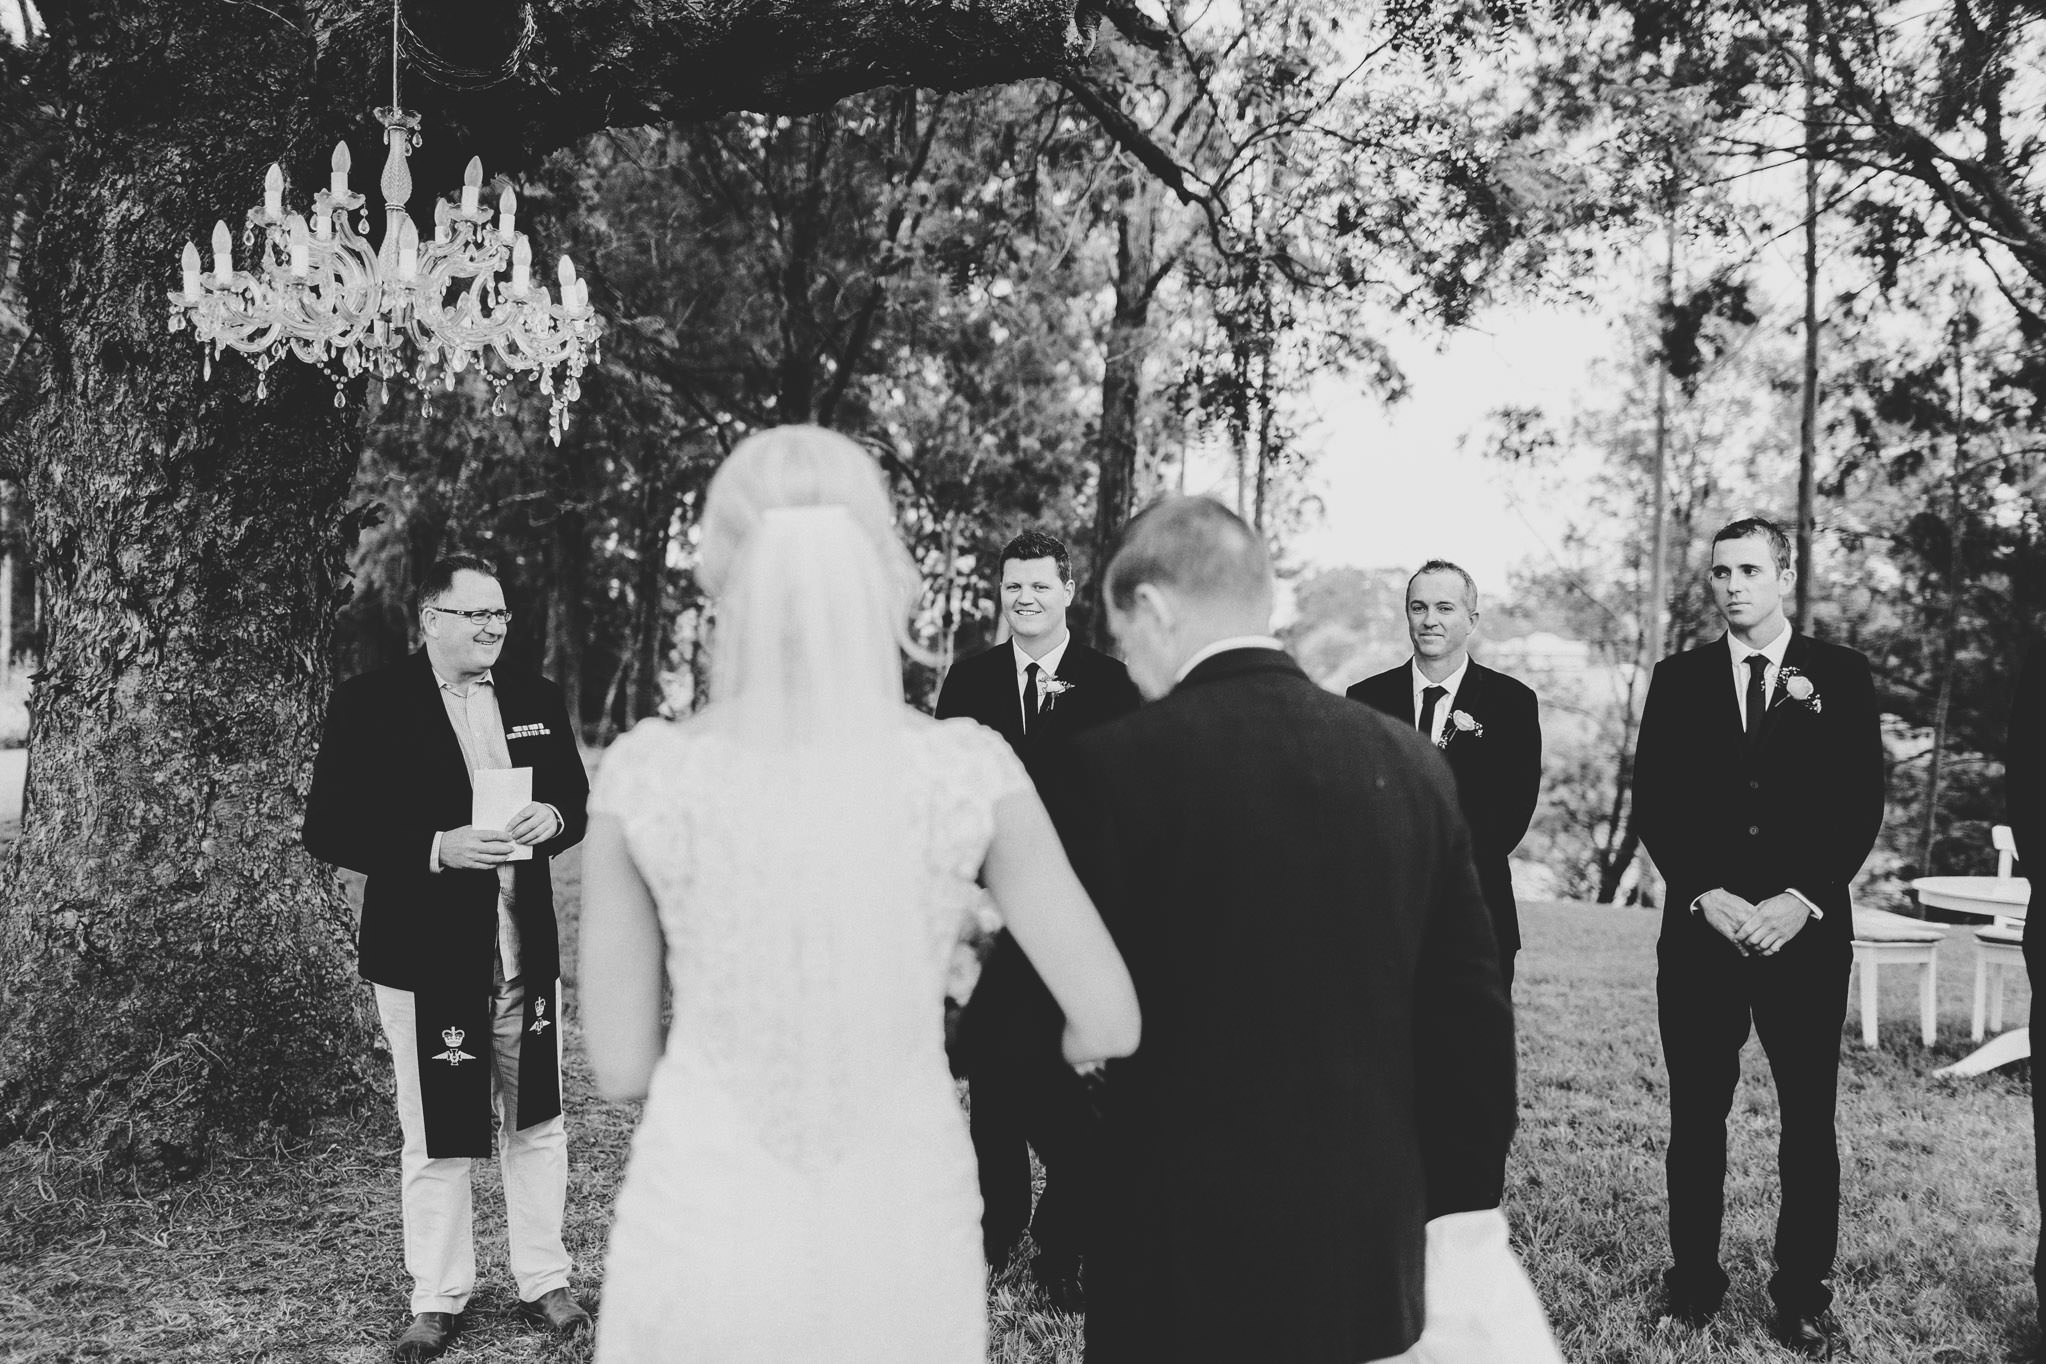 Wedding_Photographer_Newcastle_JoMatt-1048.jpg